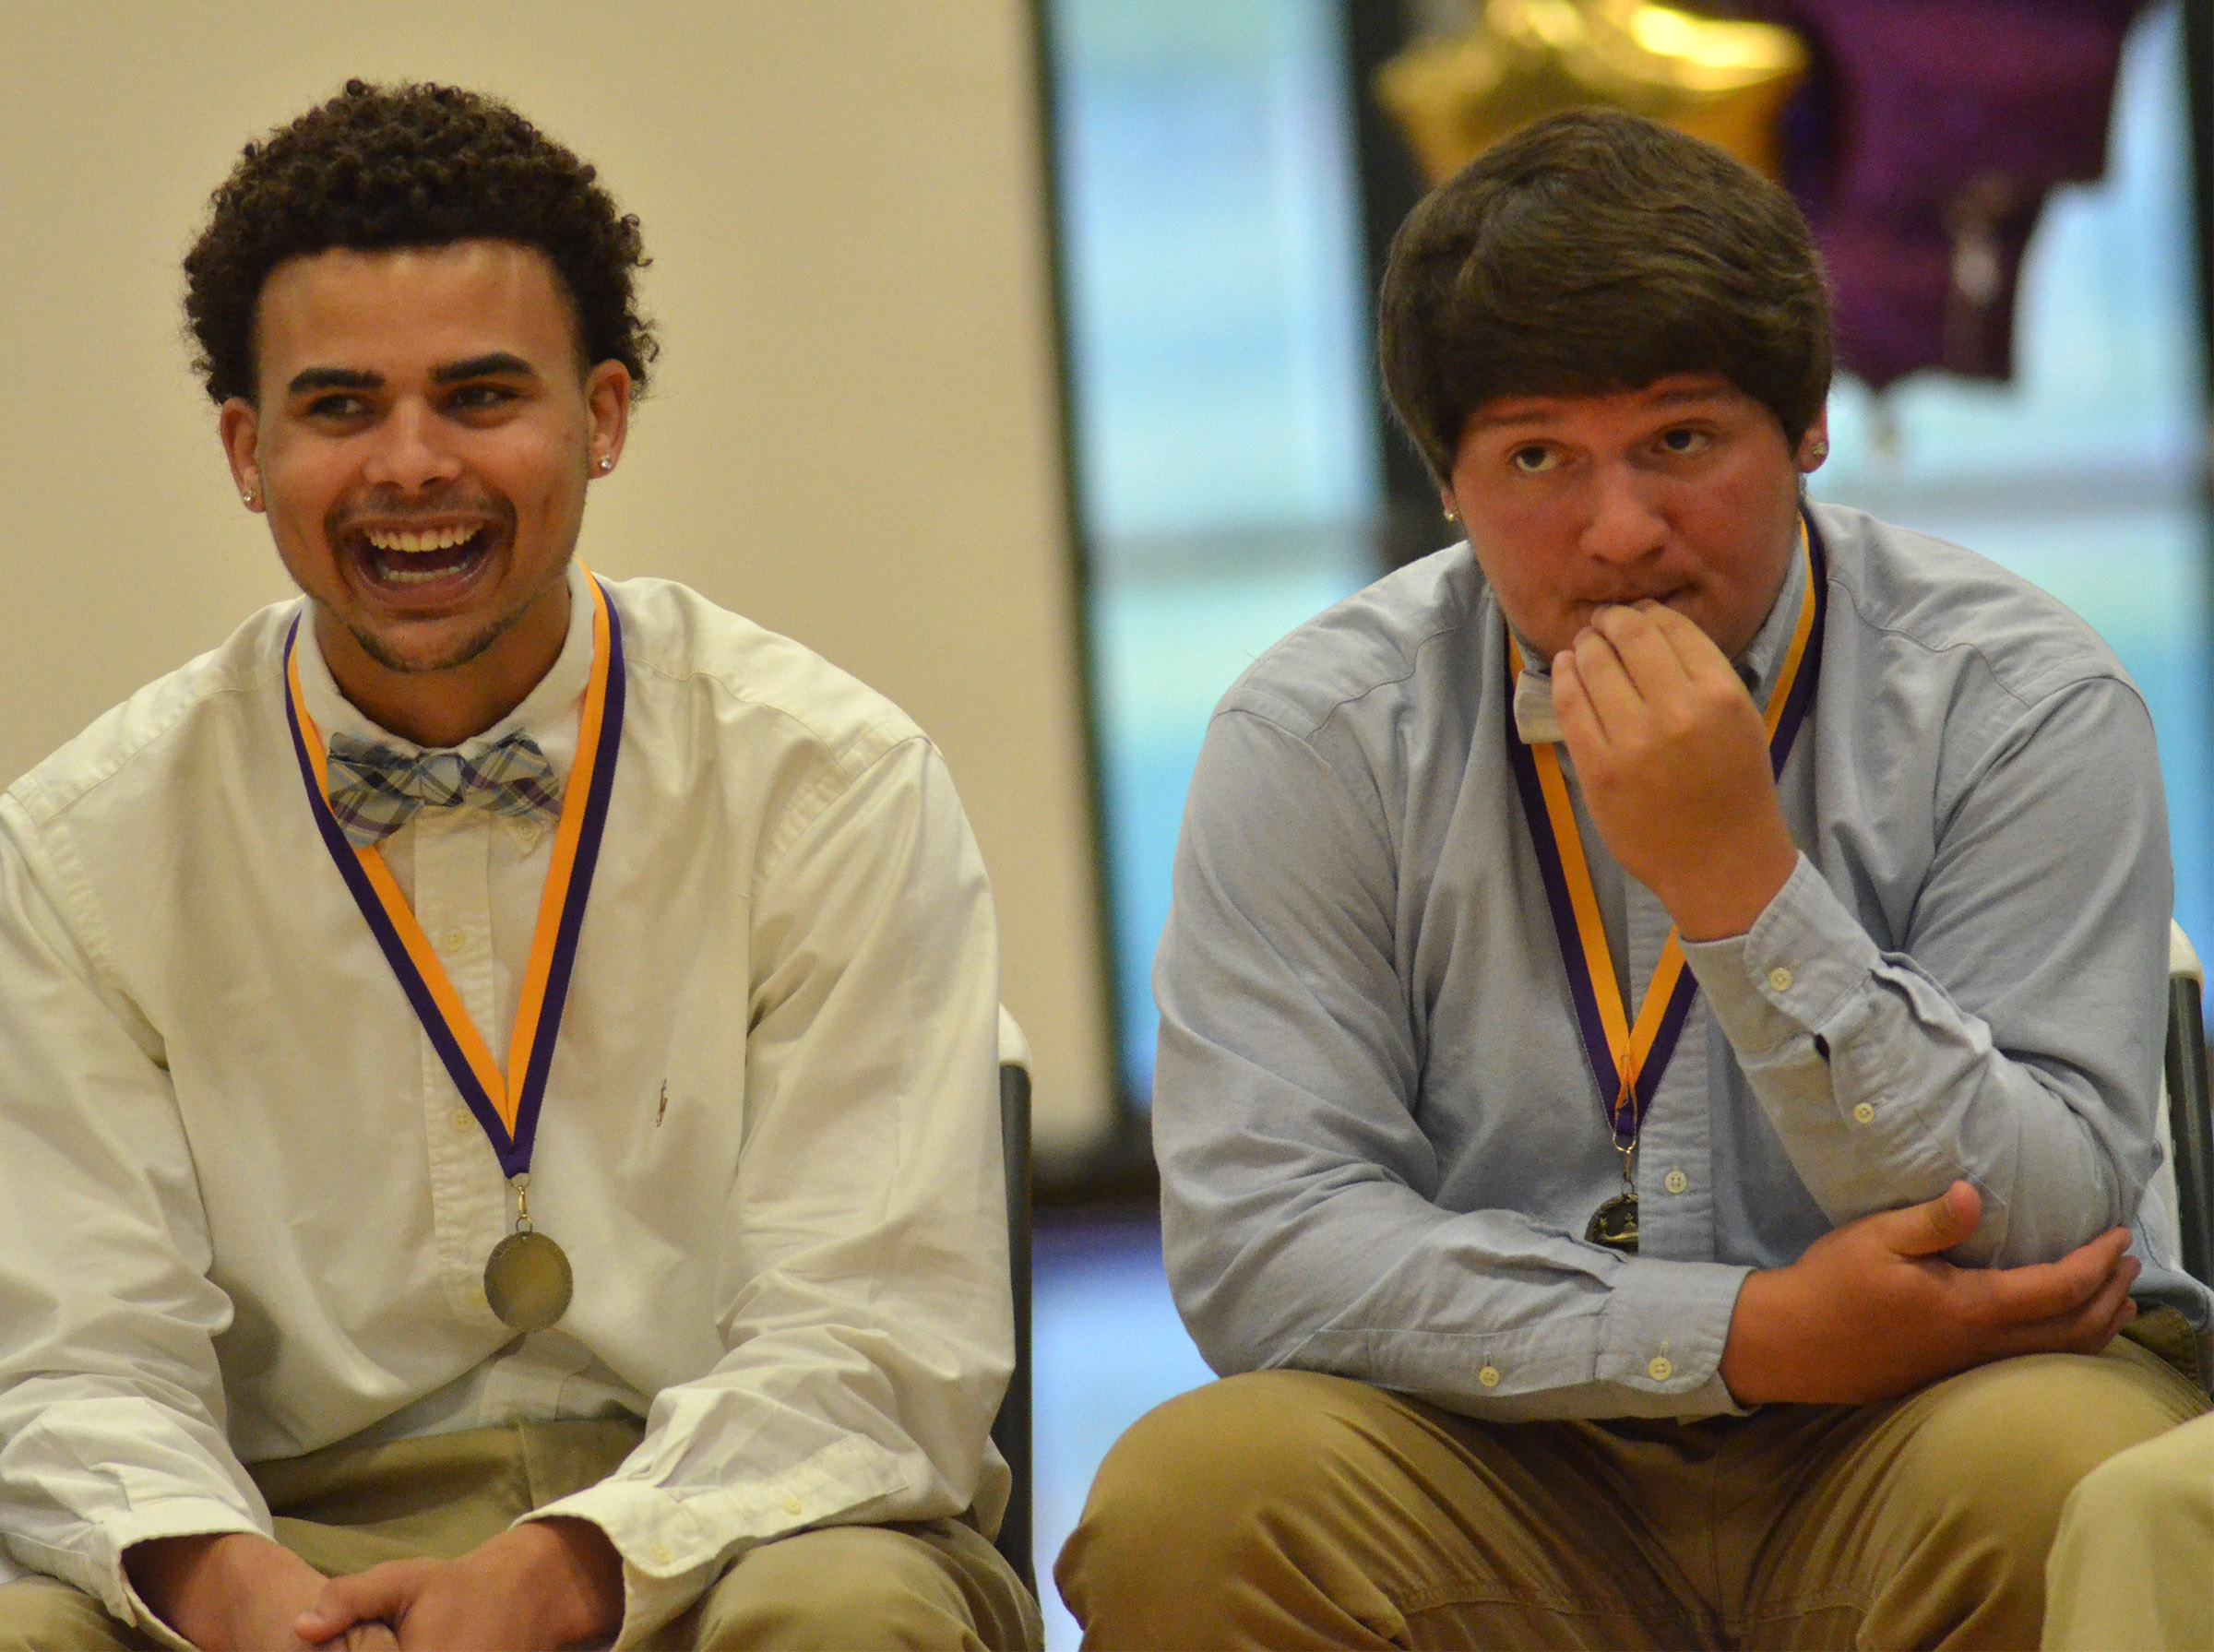 Arick Groves laughs as he and classmate Donnie Osinger listen to the class history.